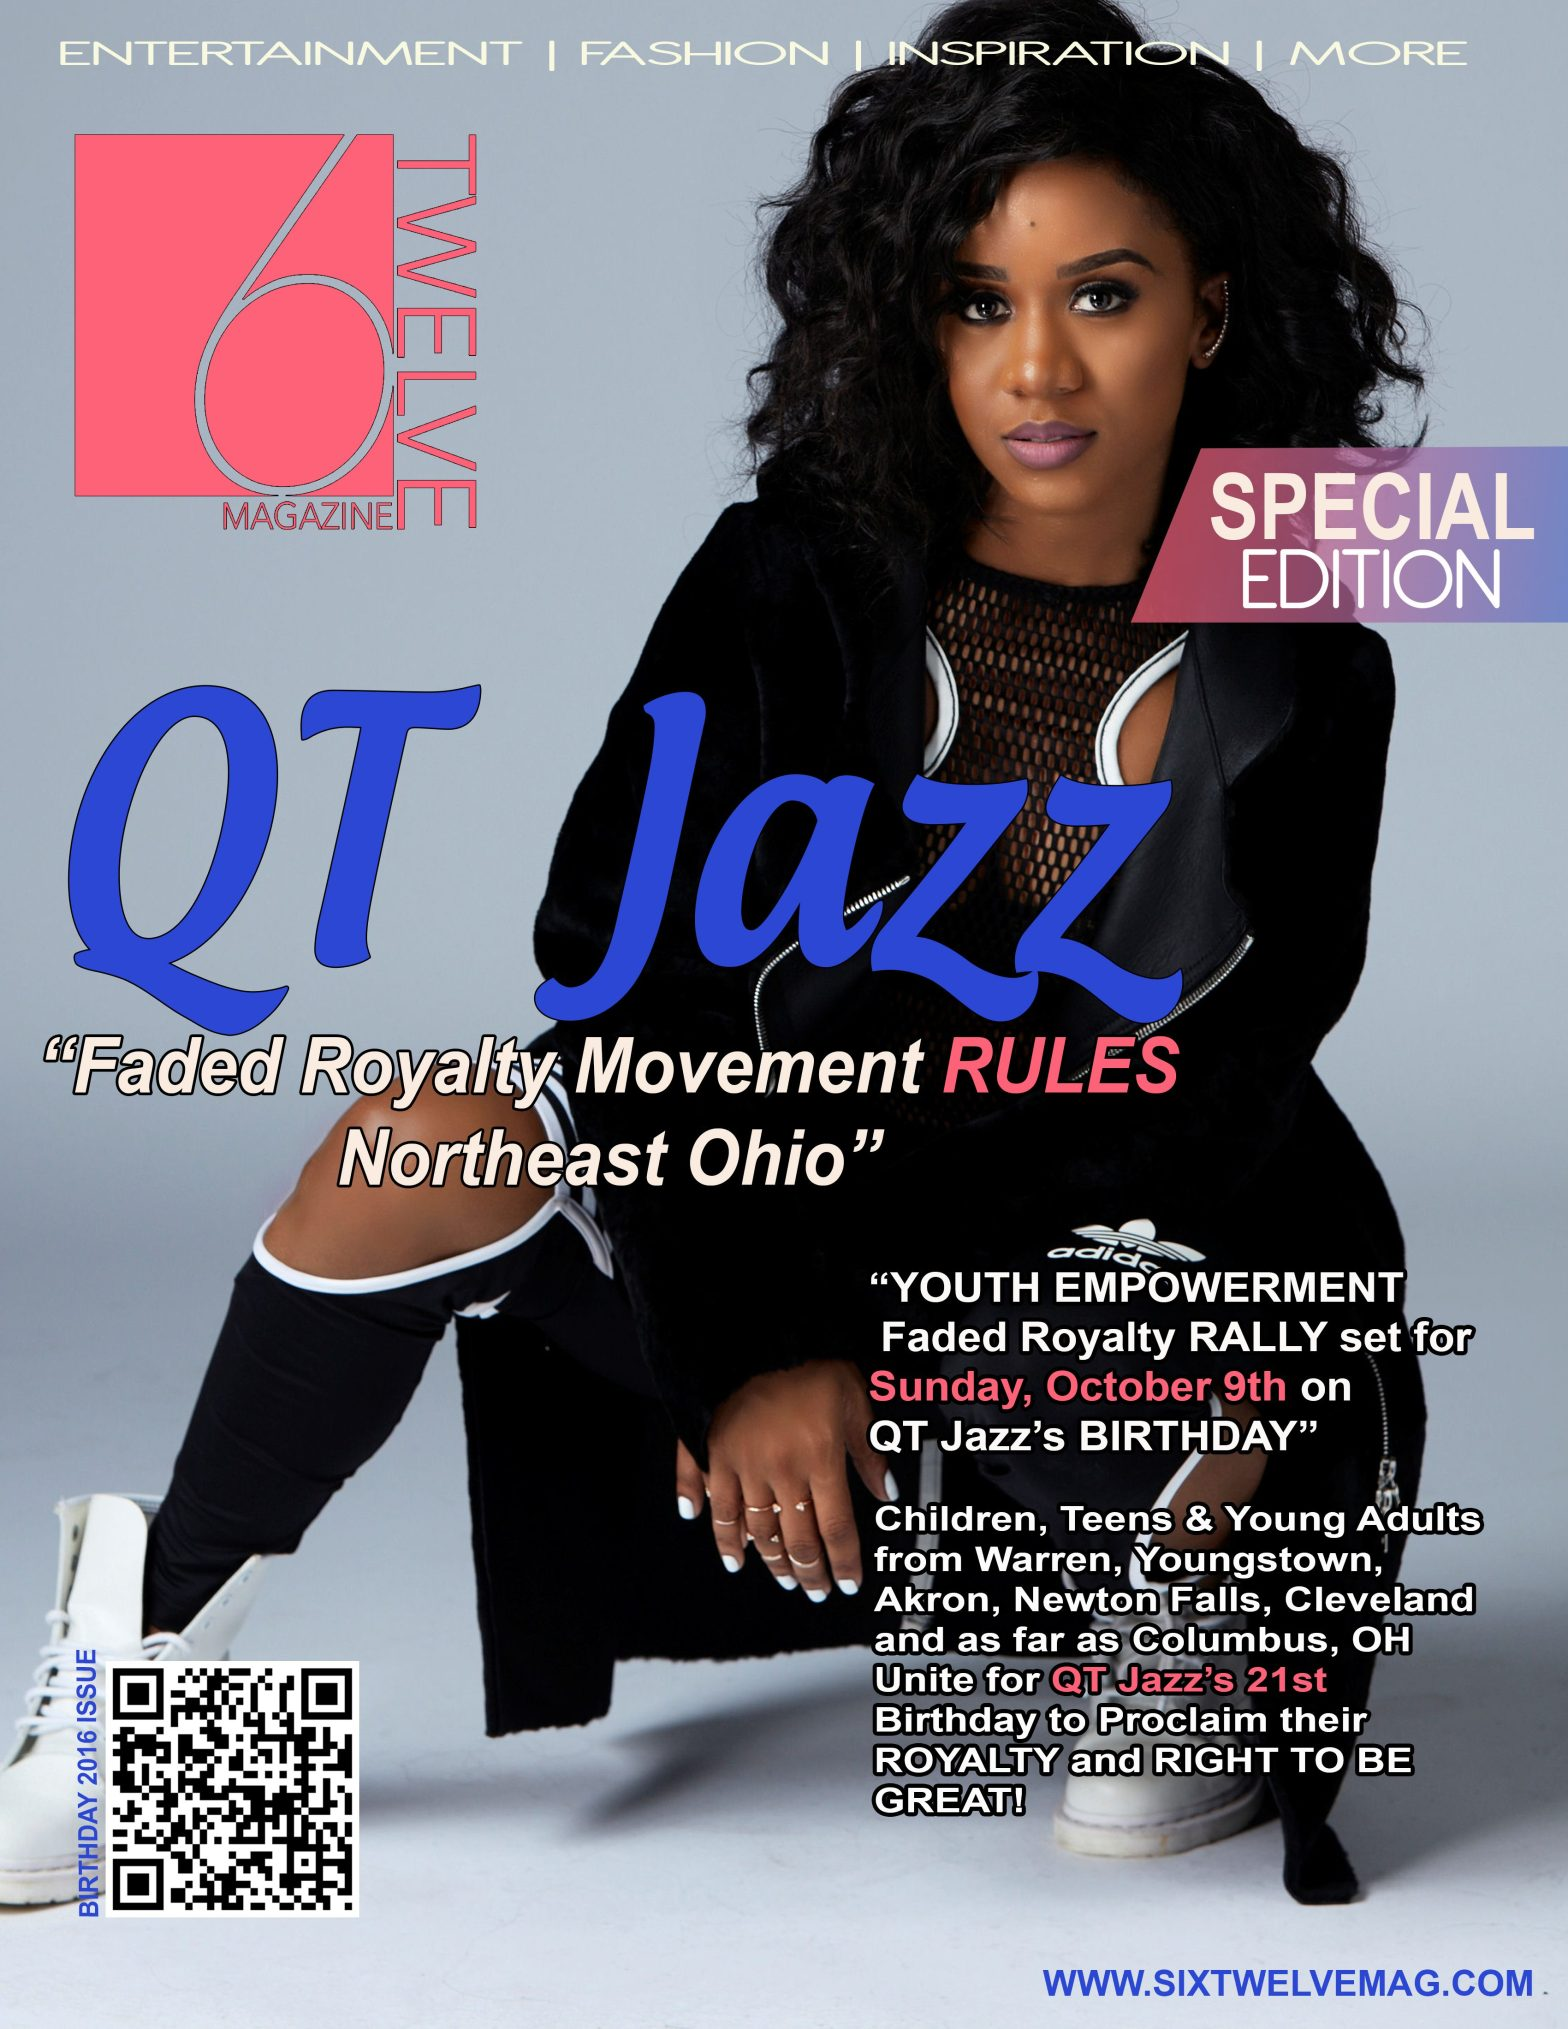 QTJAZZ Birthday/Empowerment Edition